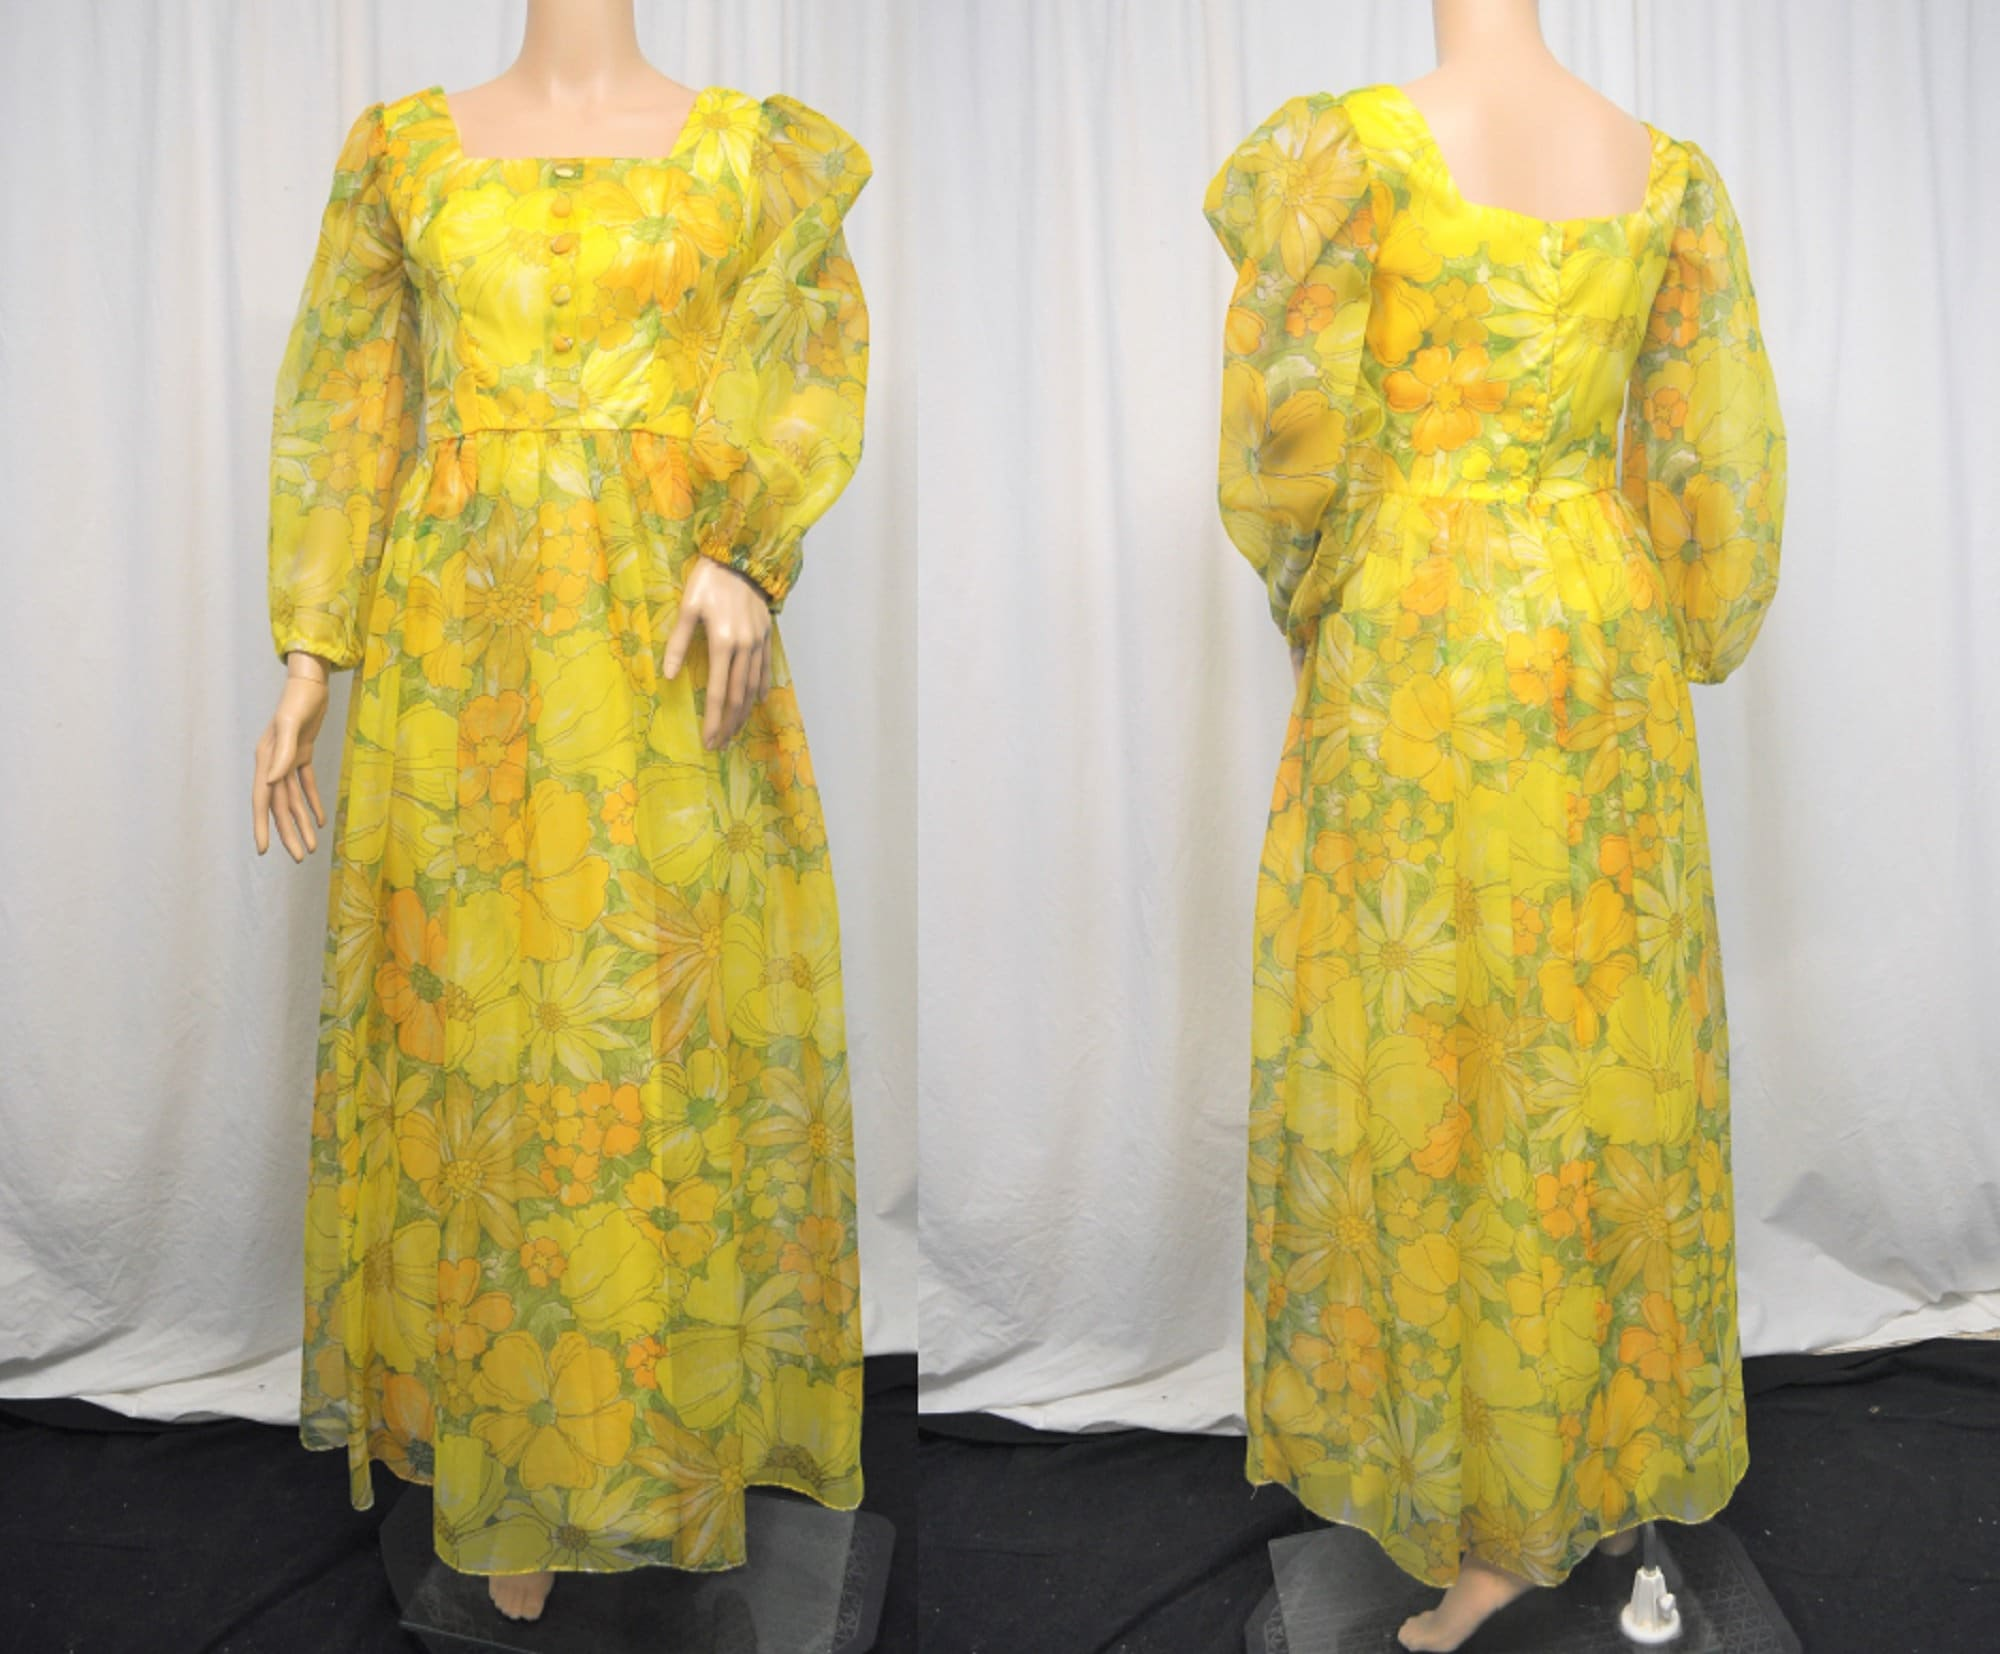 Vintage Scarf Styles -1920s to 1960s Vintage 1960S 1970S Yellow Floral Print Chiffon Over Taffeta Long Sleeve Floor Length Maxi Evening Gown With Self Sash Belt $0.00 AT vintagedancer.com